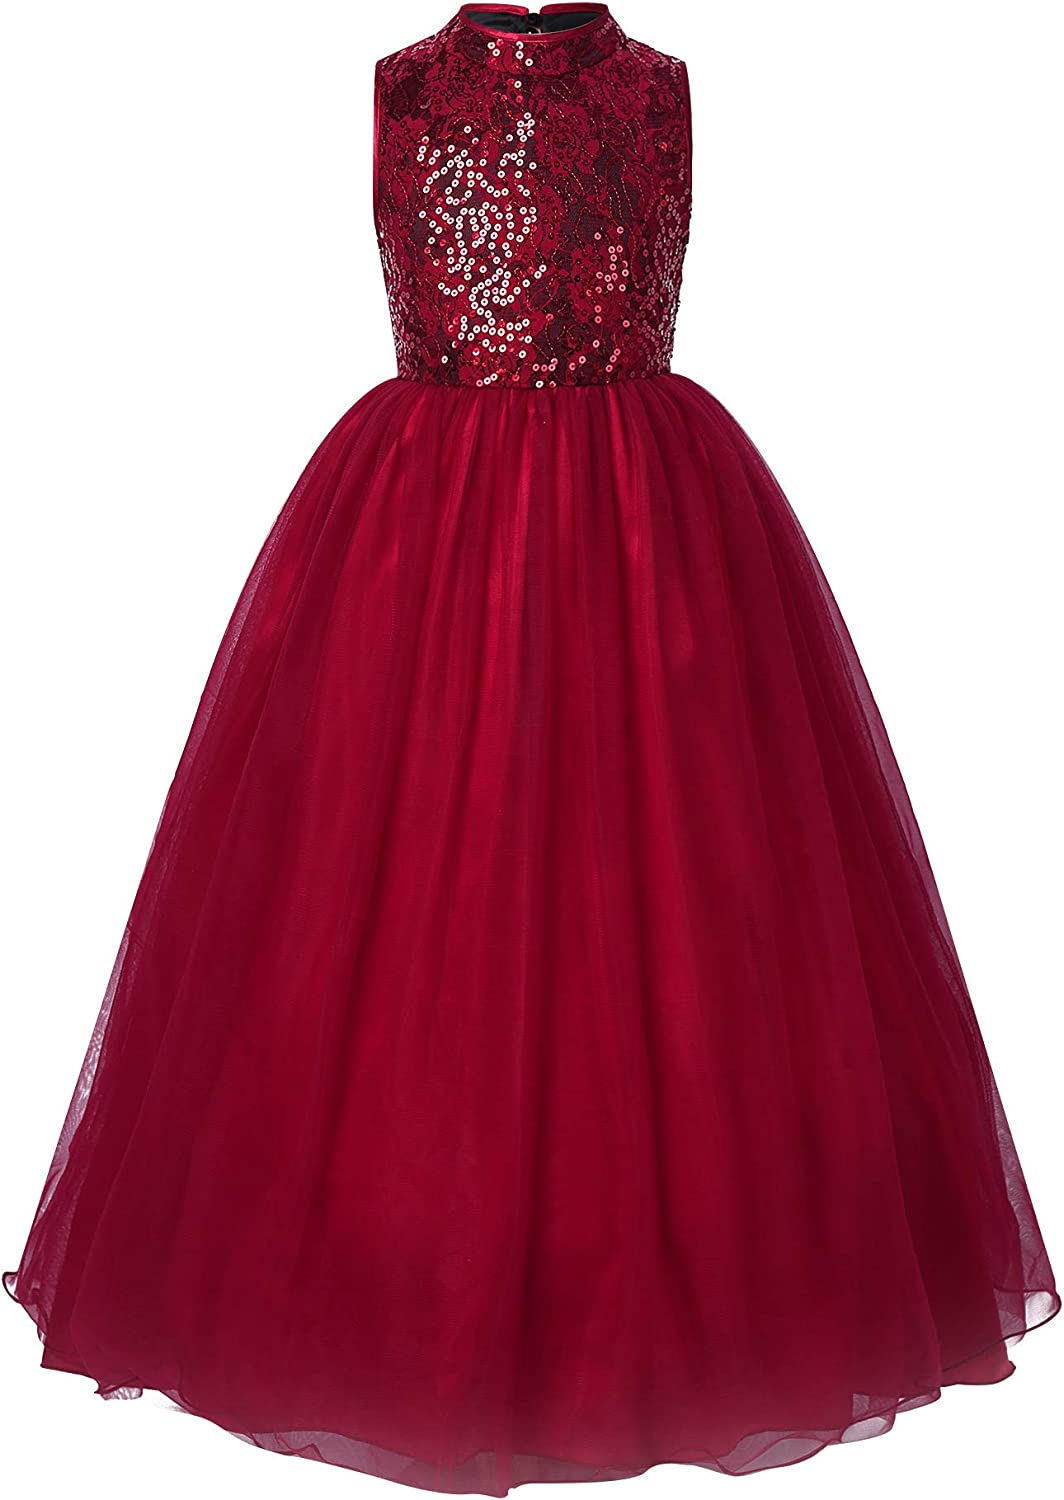 CHICTRY Big Girls Kids Sleeveless Sequin Lace Tulle Dress Wedding Pageant Christmas Formal Party Gowns